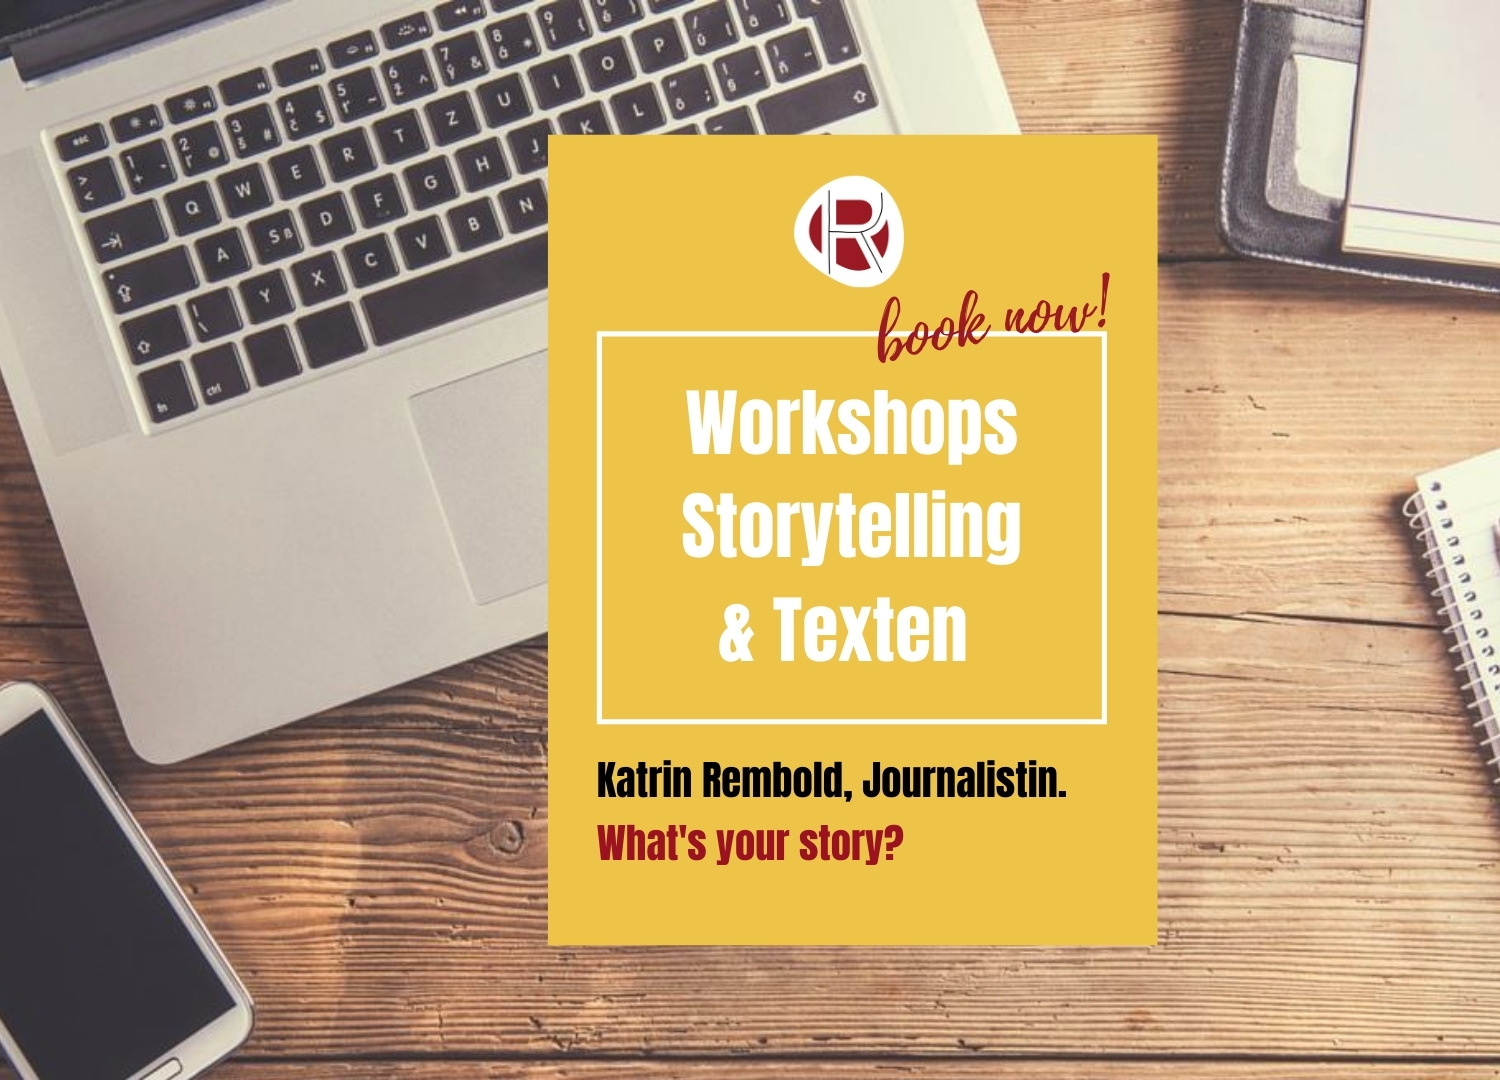 Katrin Rembold, Journalistin & Texterin. Workshop Storytelling und Texten. What's your story?